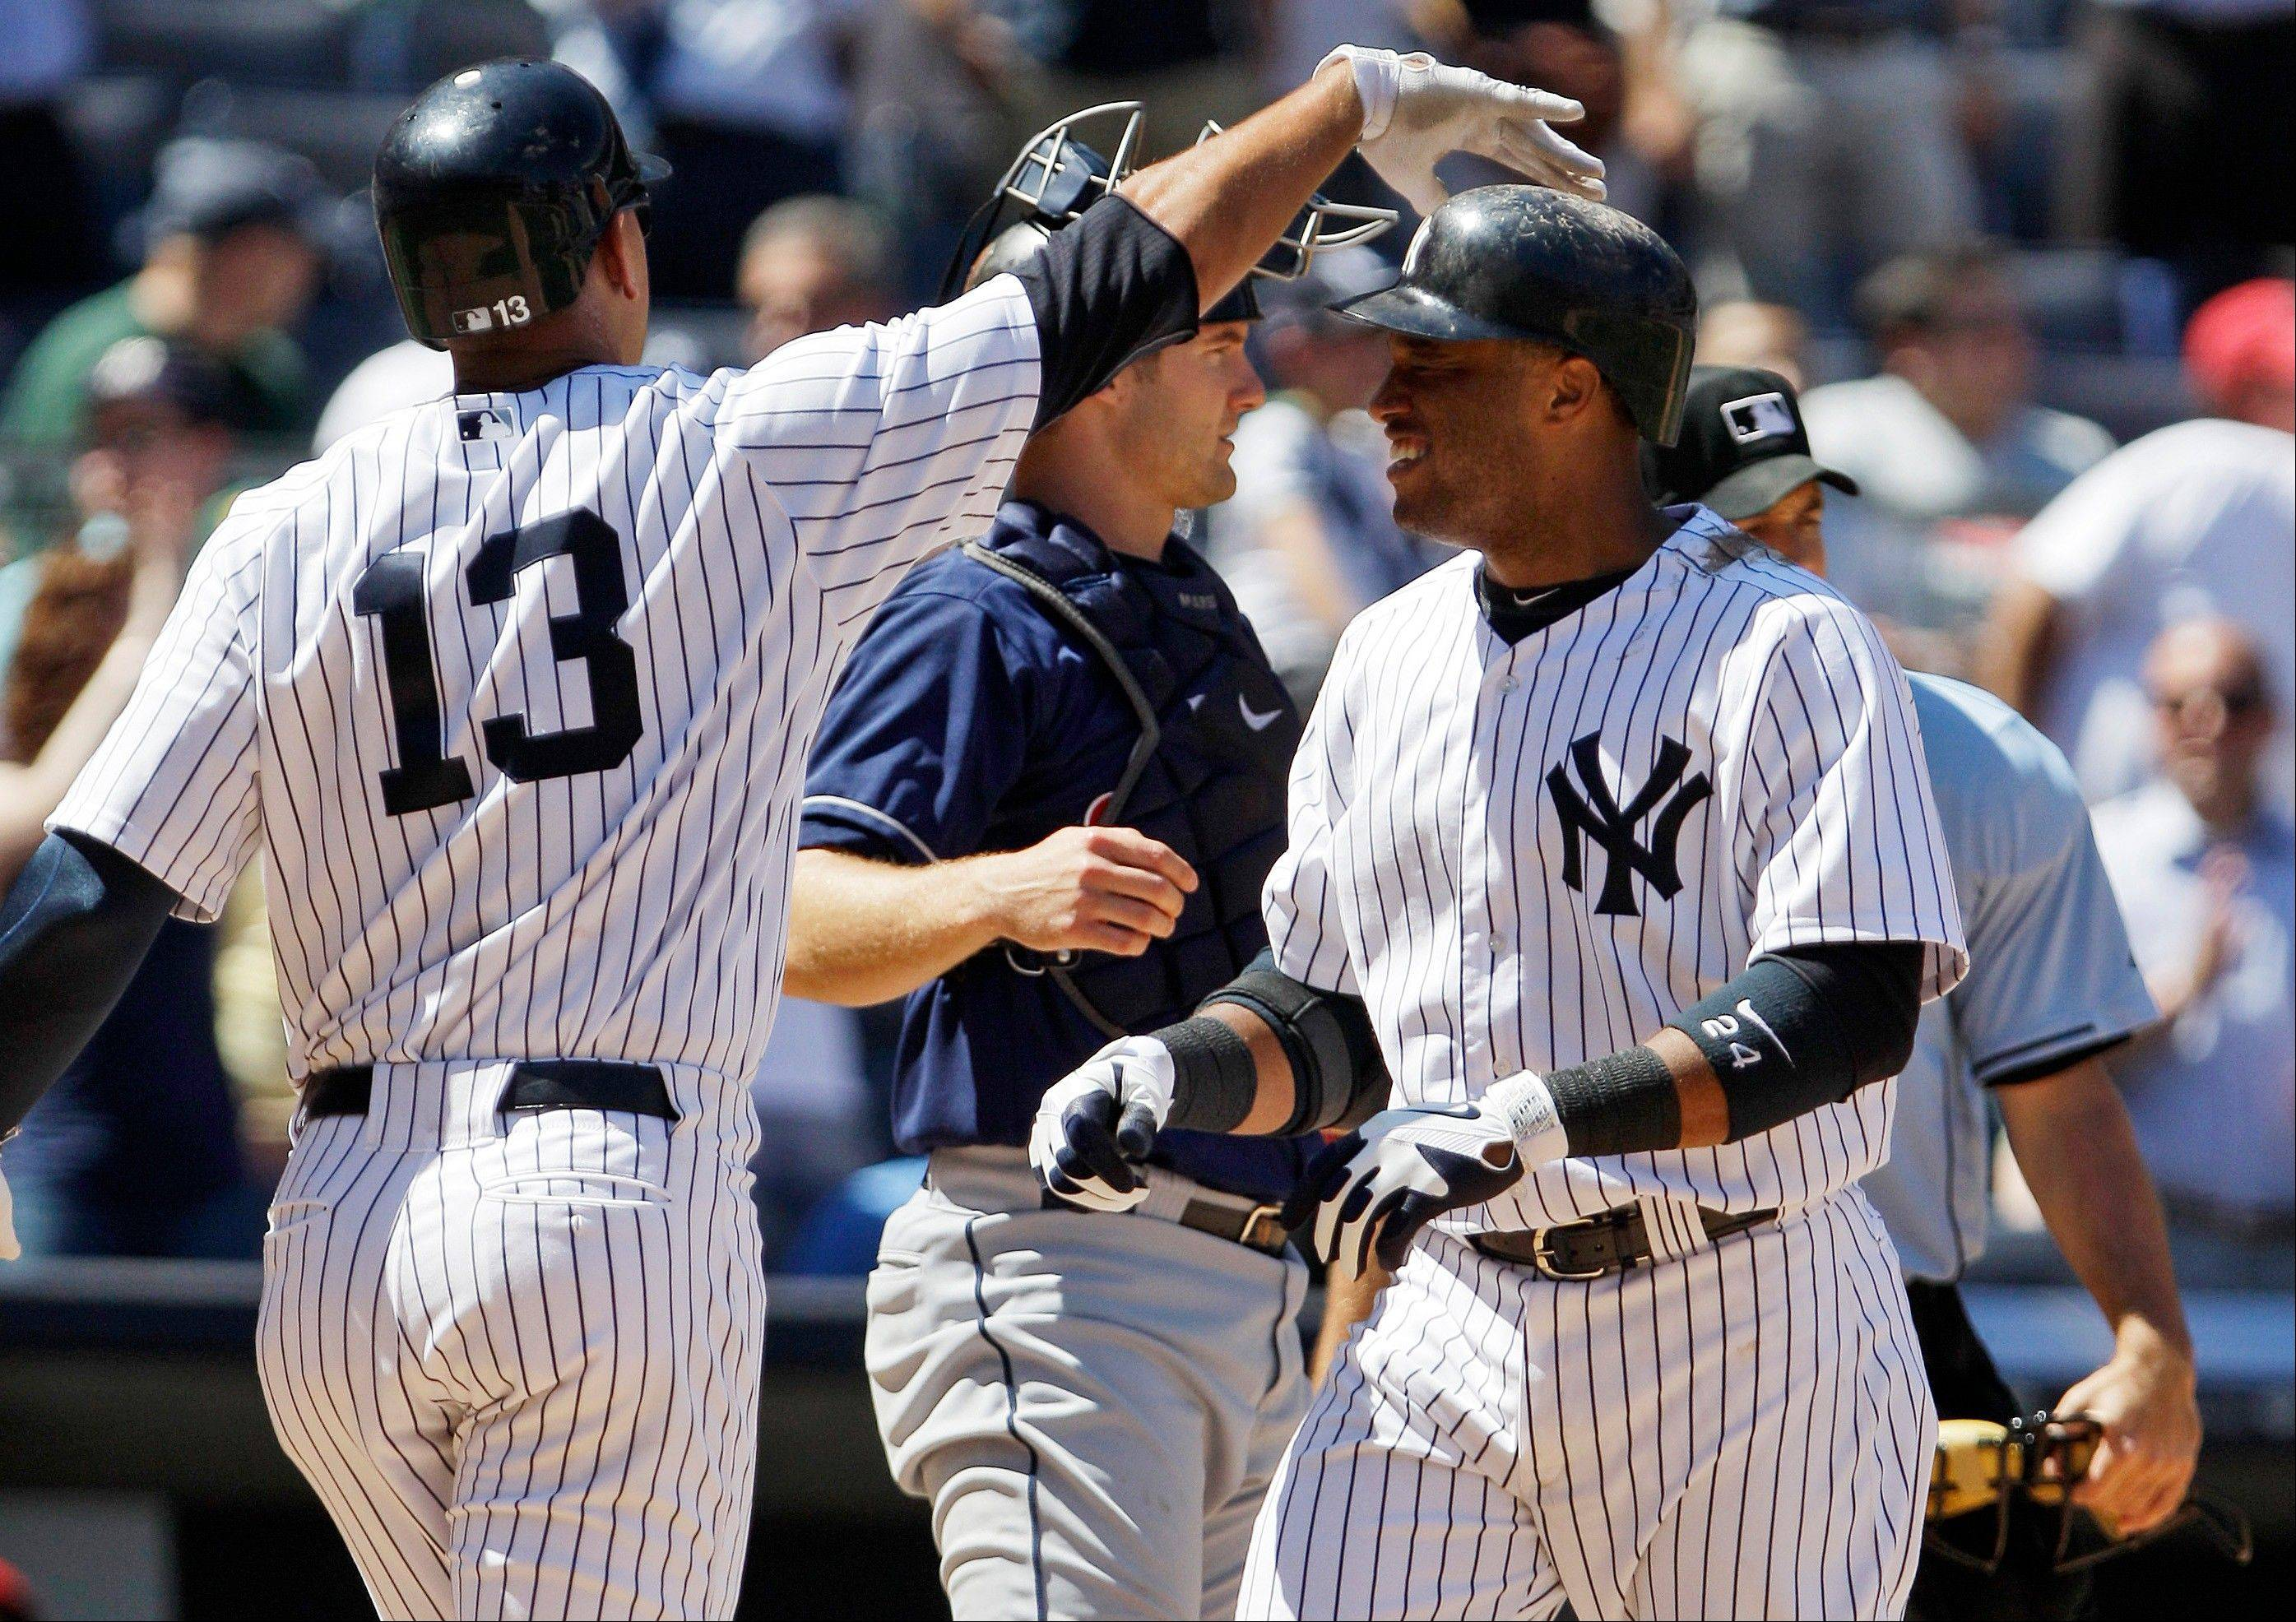 New York Yankees third baseman Alex Rodriguez celebrates with teammate Robinson Cano Wednesday after Cano hit a two-run home run during the sixth inning as Cleveland Indians catcher Lou Marson looks on in New York.